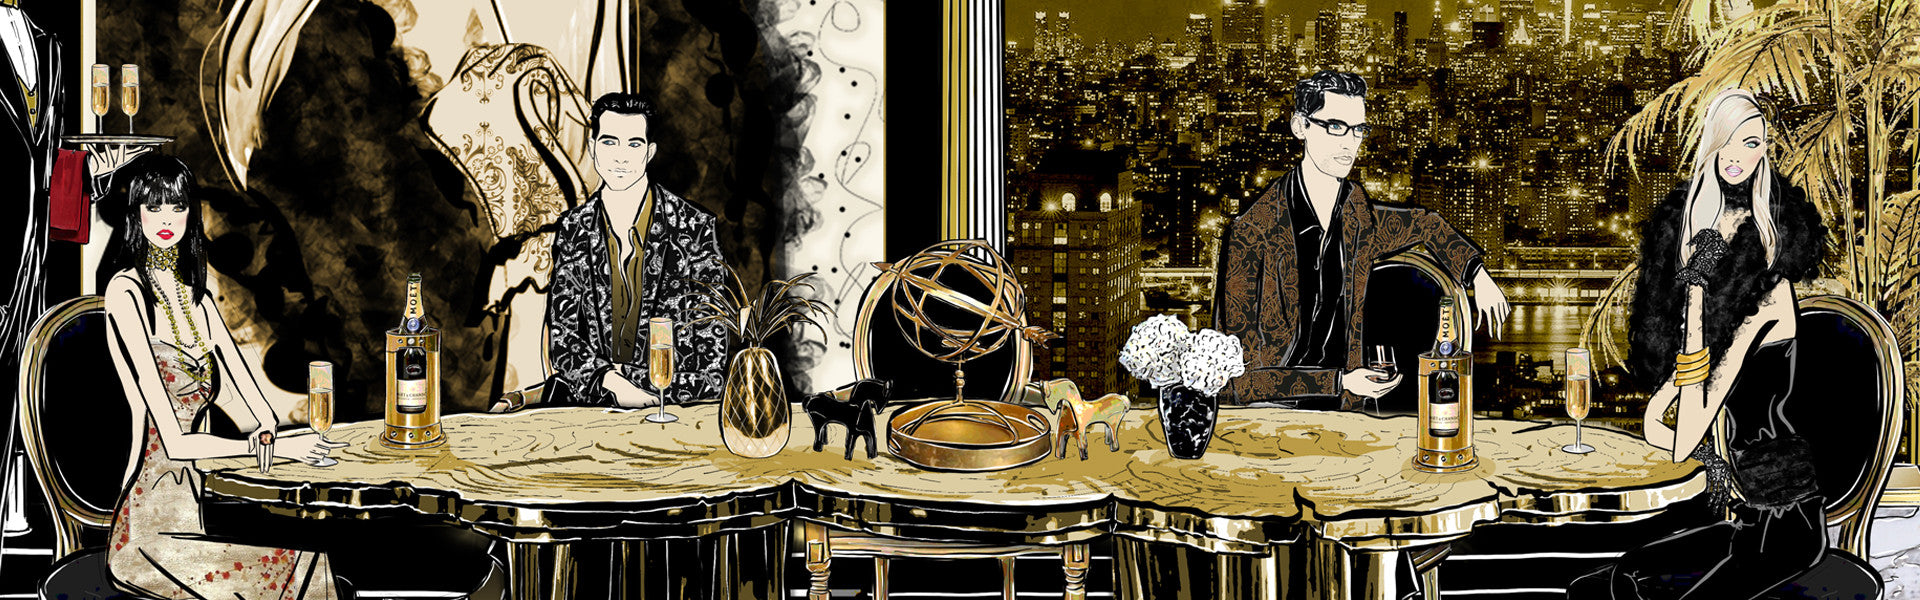 50 Shades Gold - Fashion Illustration